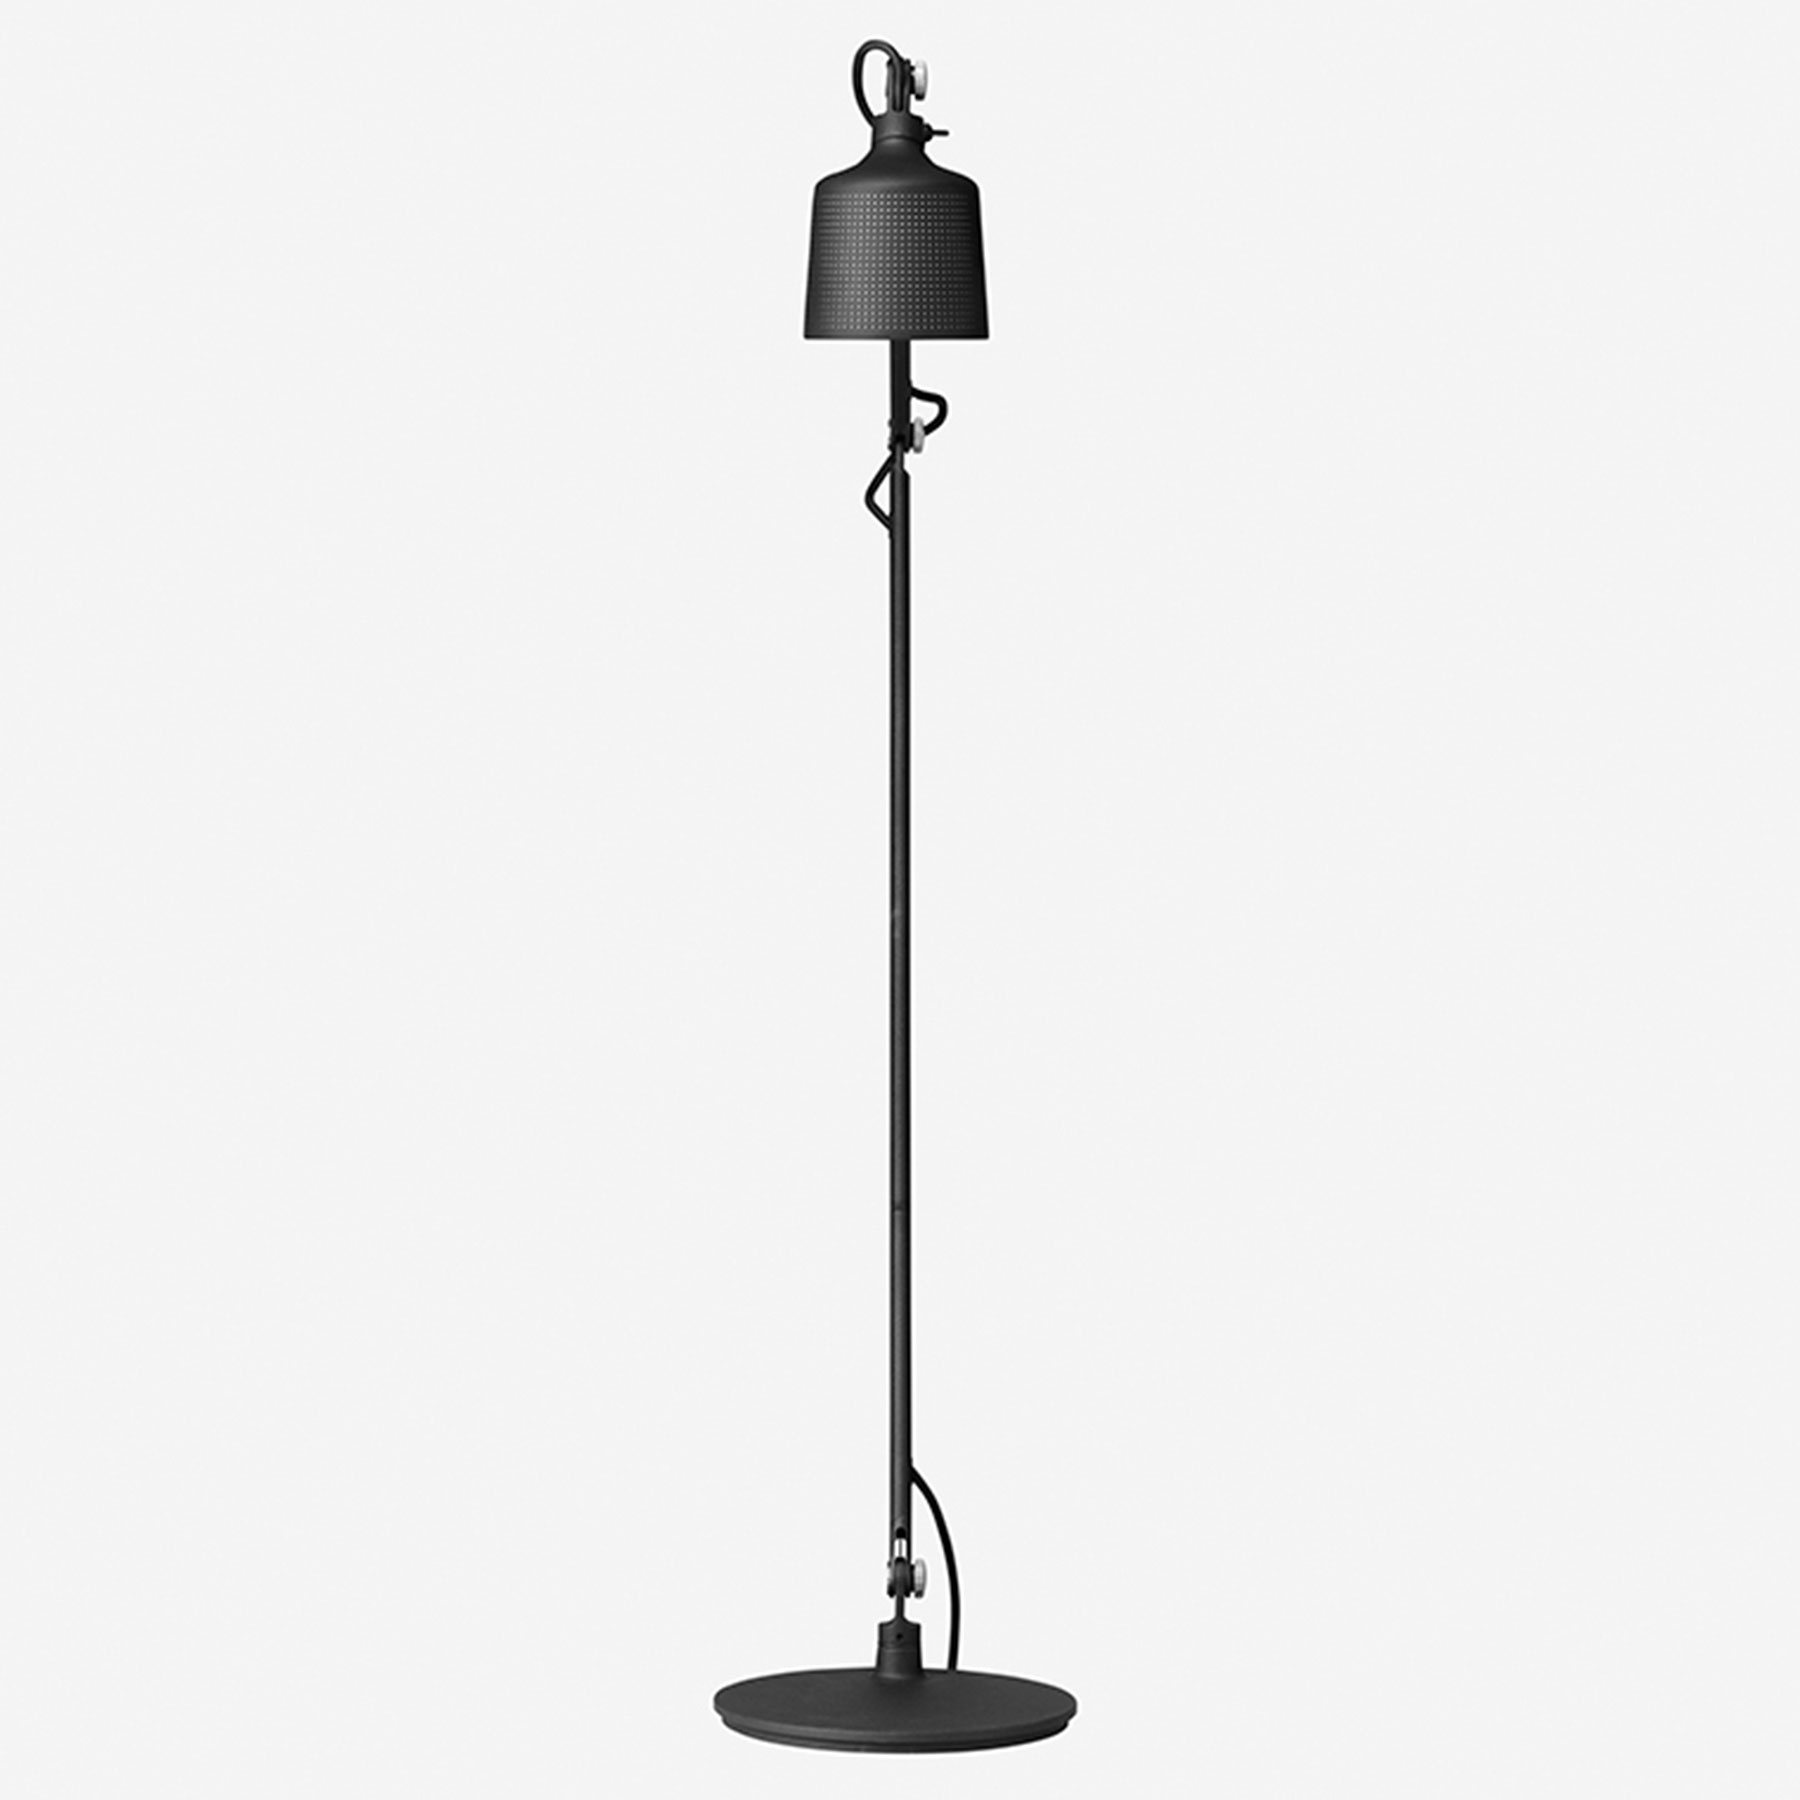 a8011af6993a4 Vipp525. Floor reading lamp